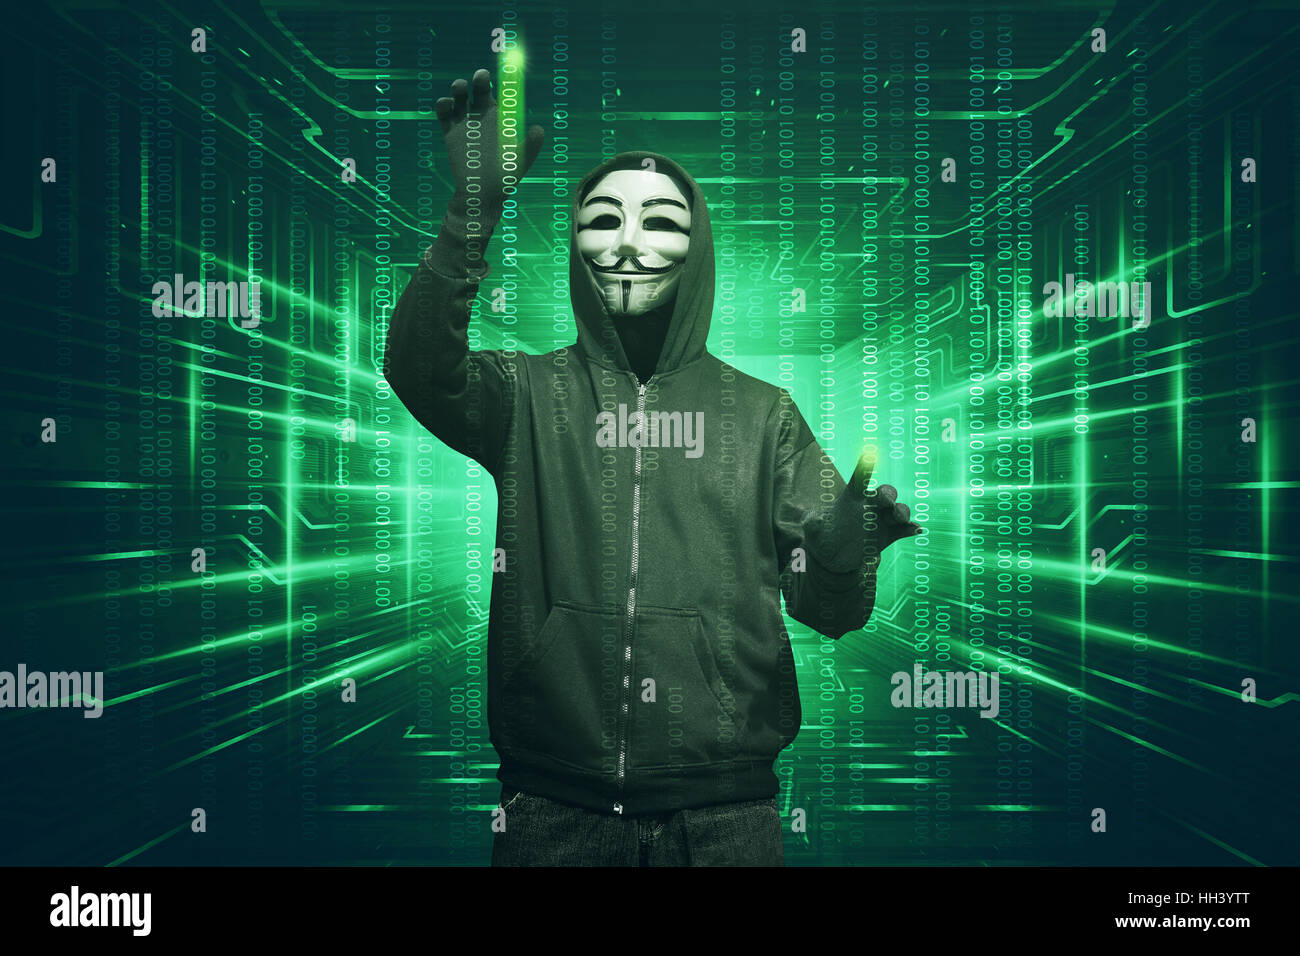 Hacker man with vendetta mask hacking binary system security code on the virtual screen - Stock Image